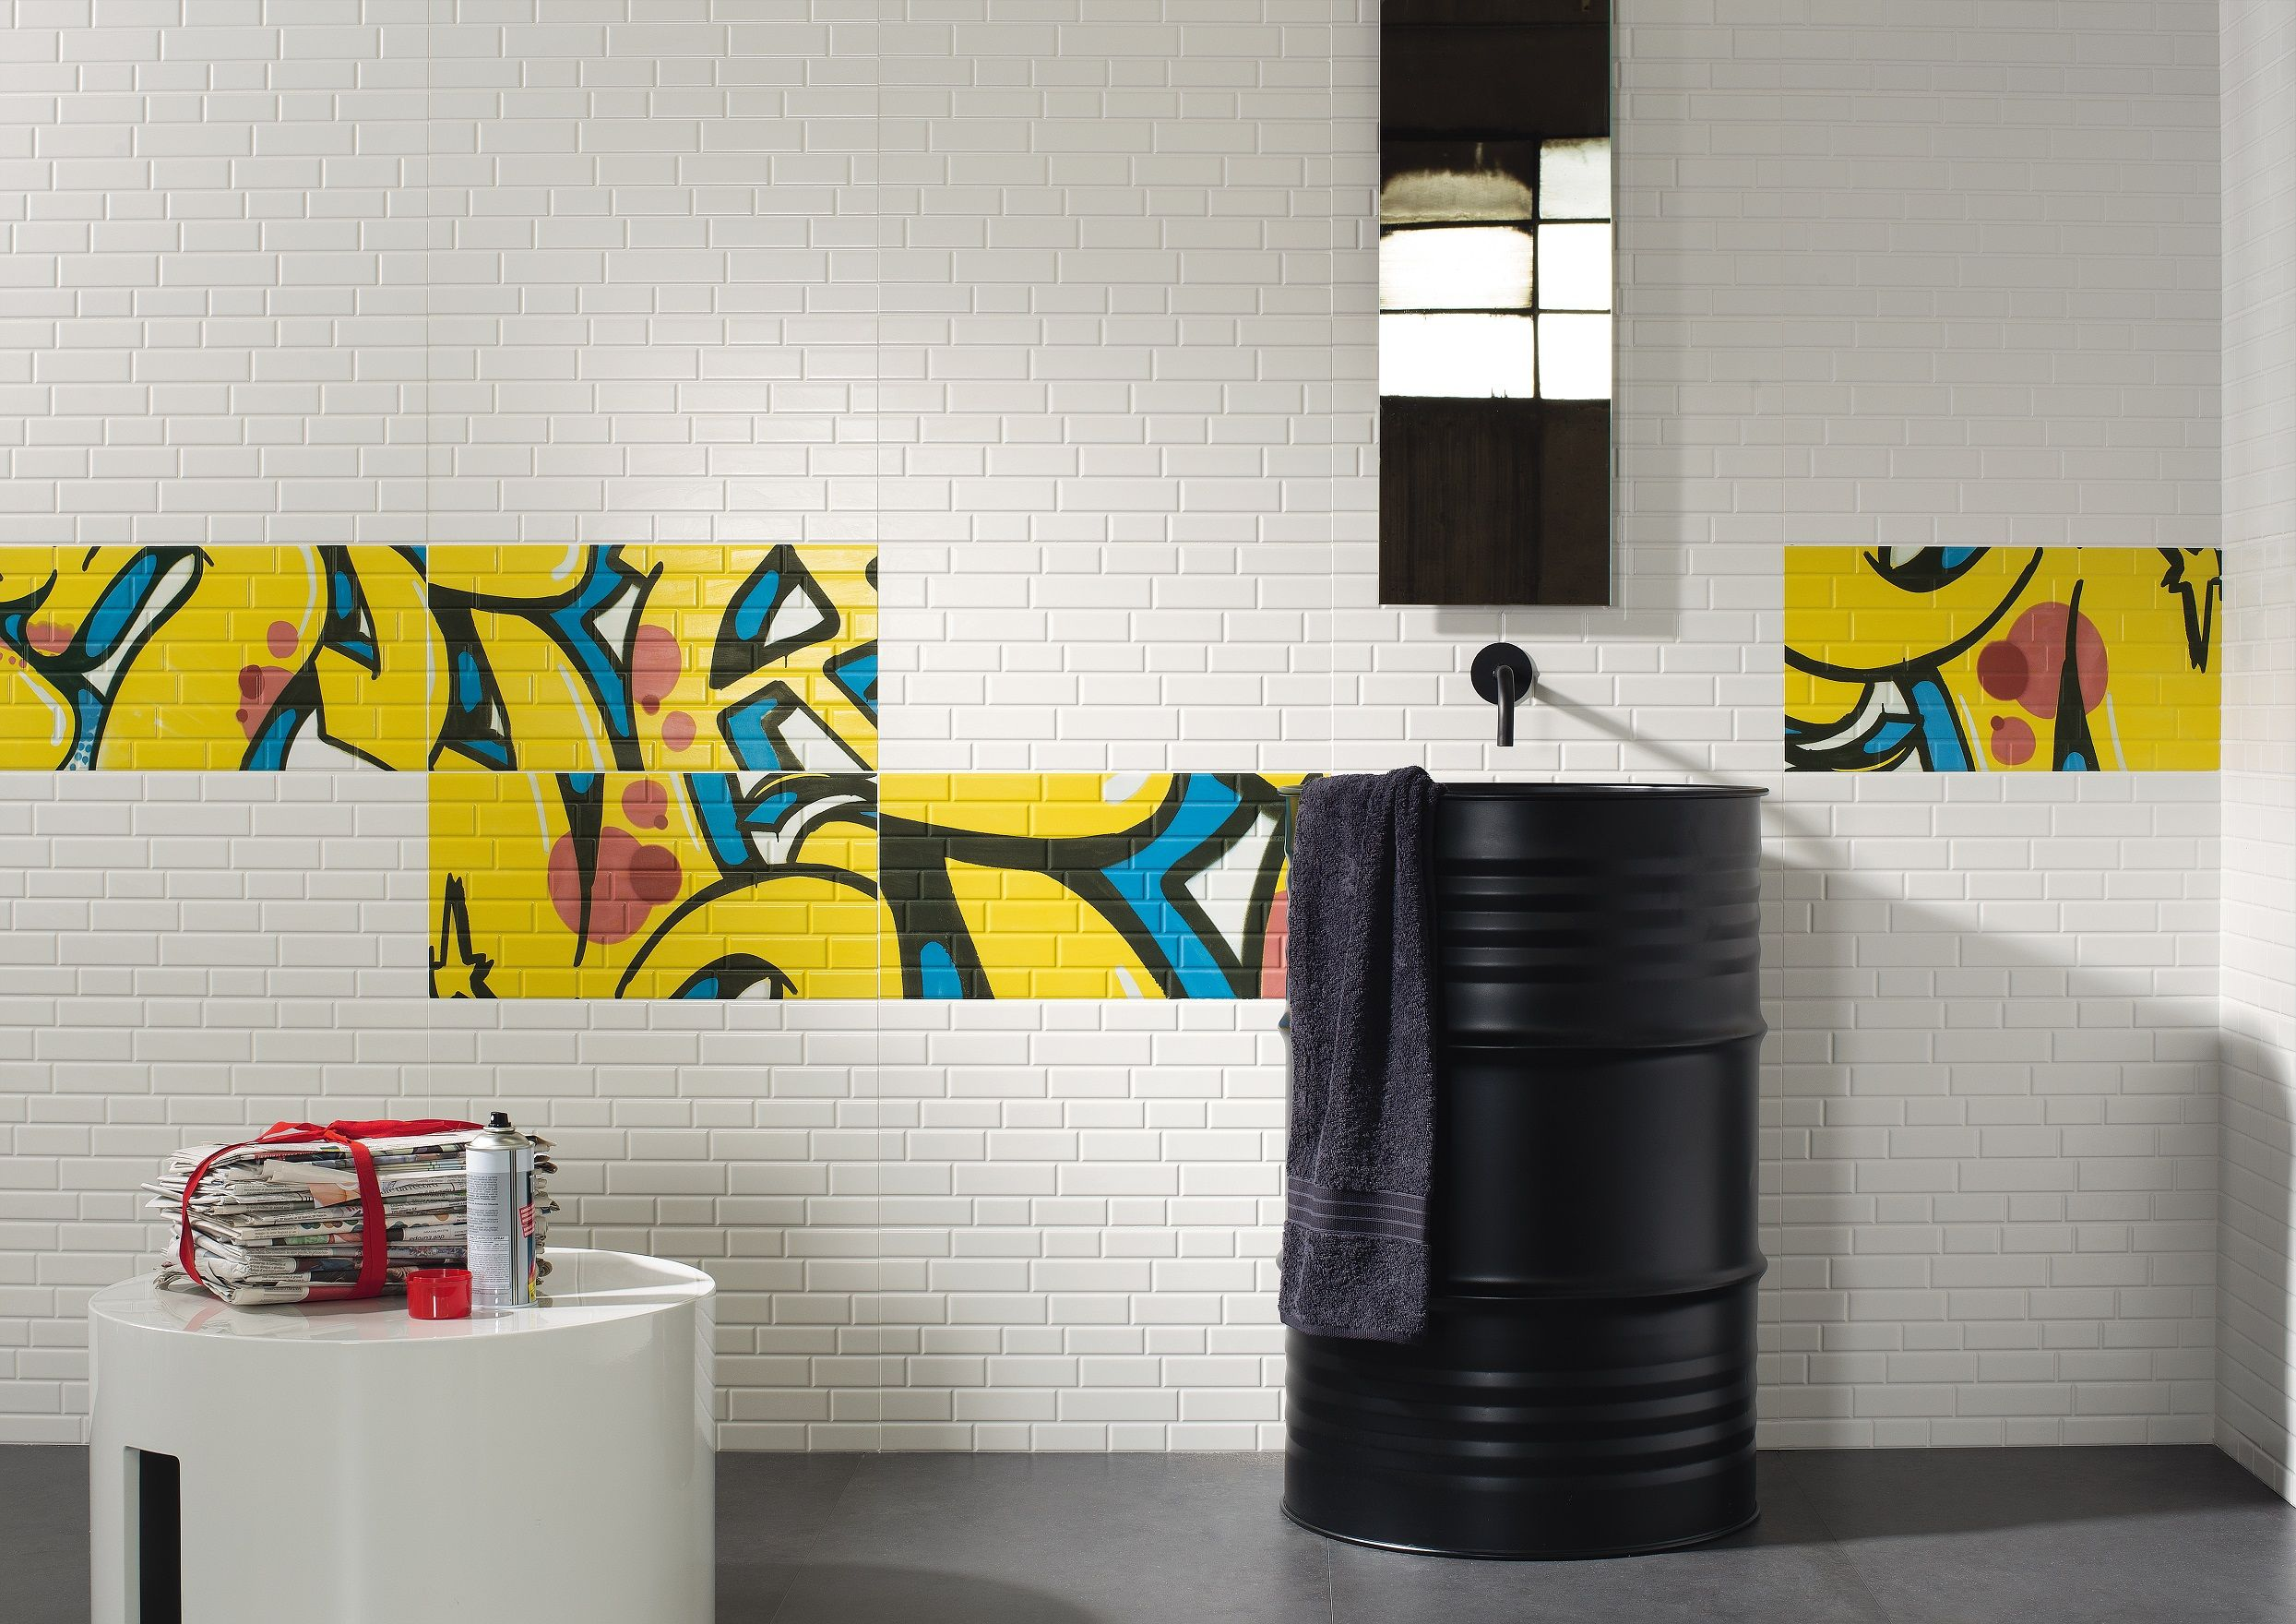 Be bold with modern graffiti art tiles in bright colours